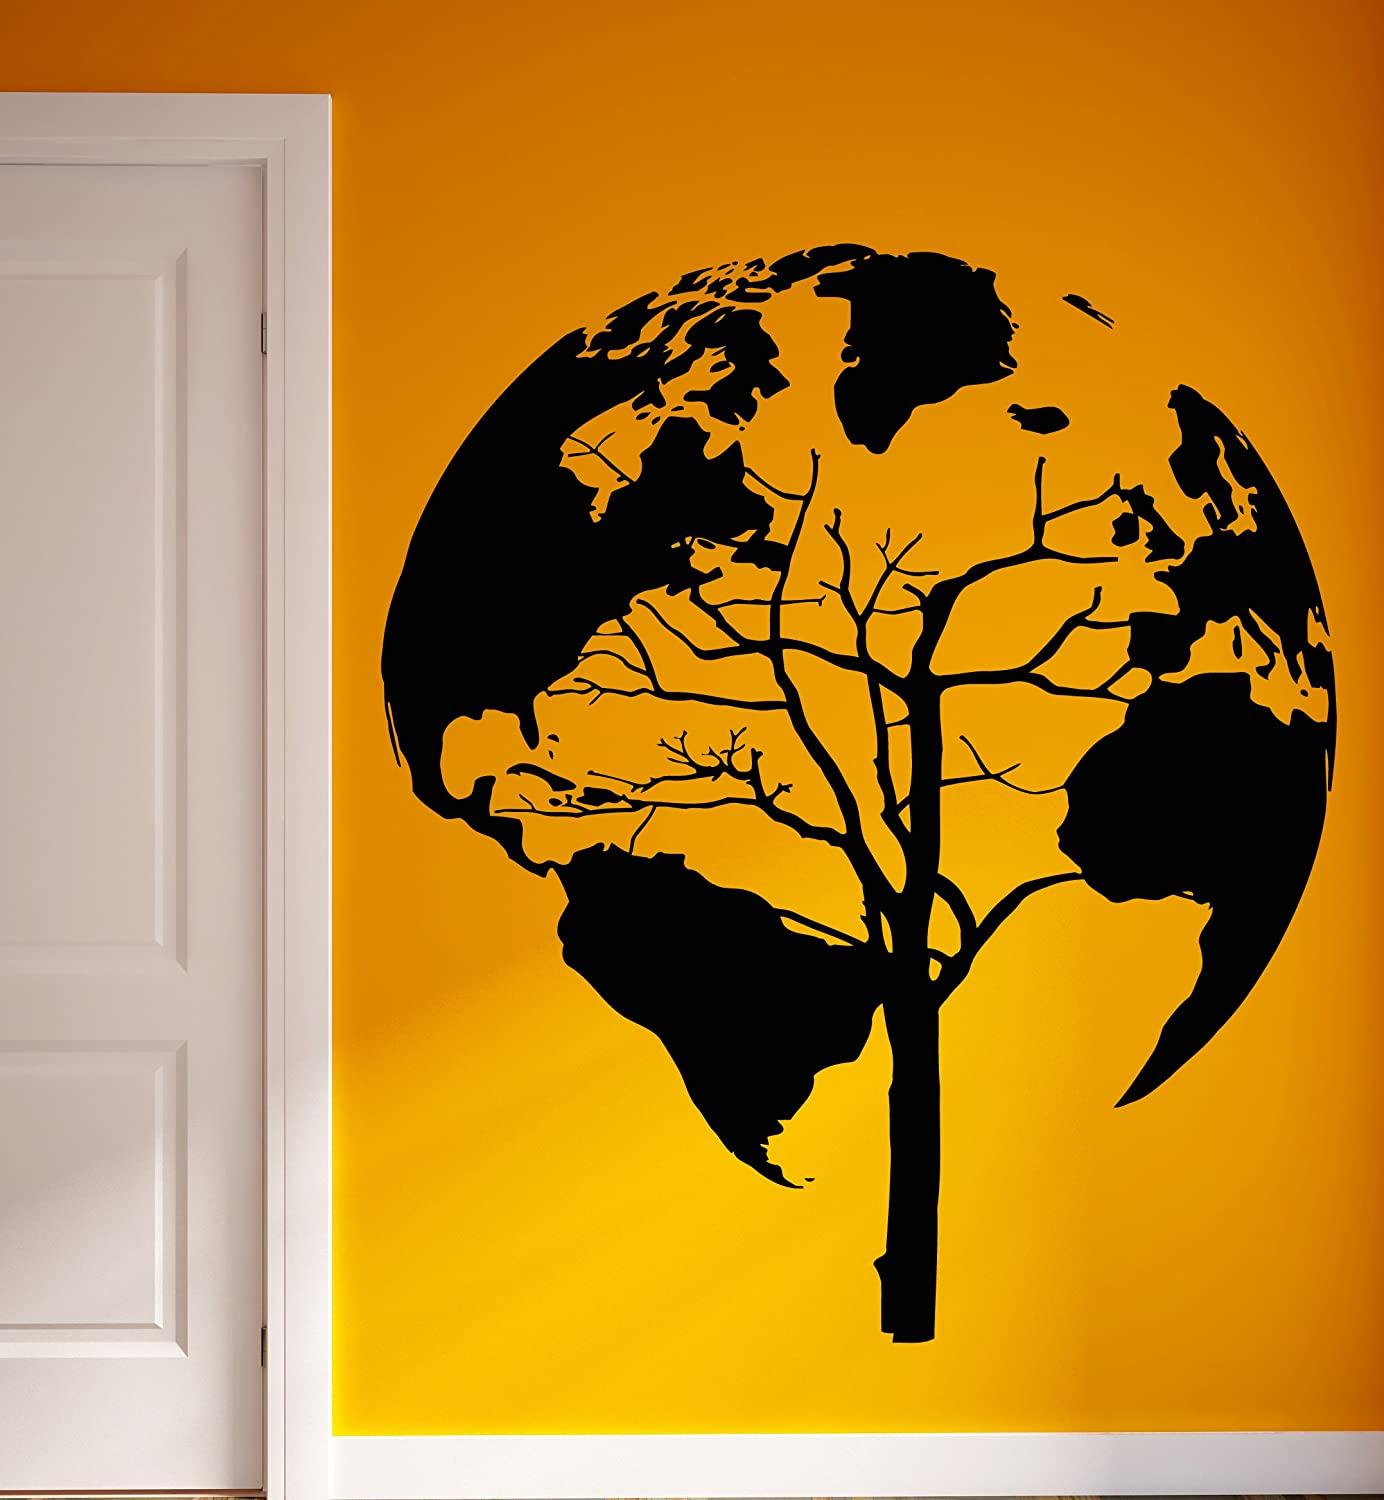 Amazon.com: Wall Vinyl Stickers World Map Earth Tree Unusual Decor ...